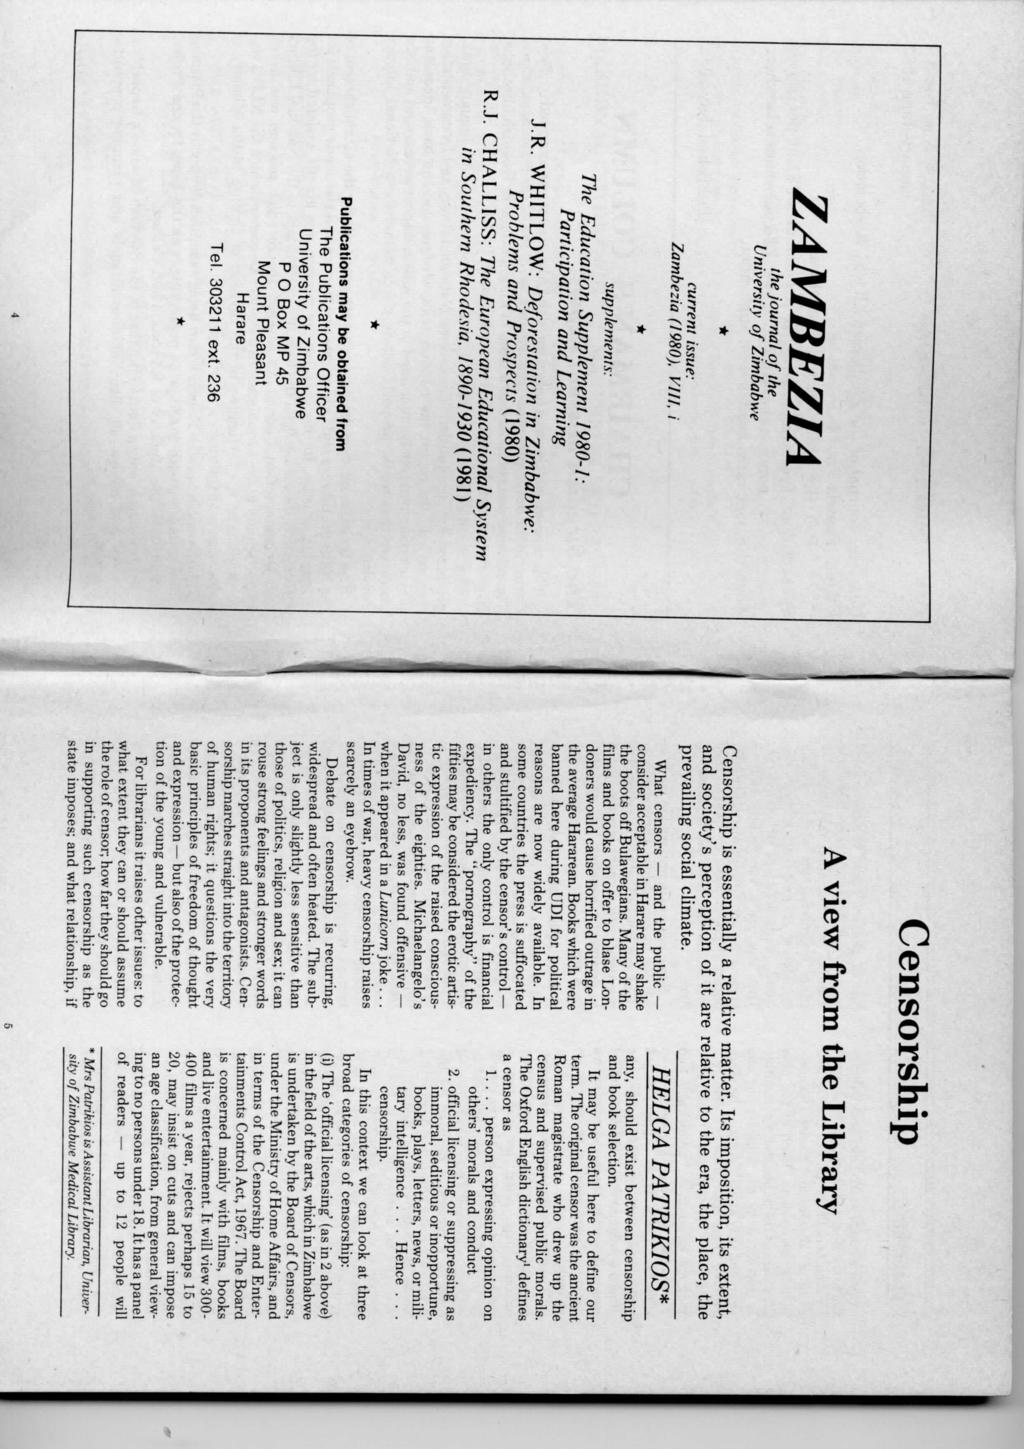 Censorship ZAMBEZIA the journal of the University of Zimbabwe current issue: Zambezia (1980), VIII, i supplements: The Education Supplement 1980-1: Participation and Learning J.R.